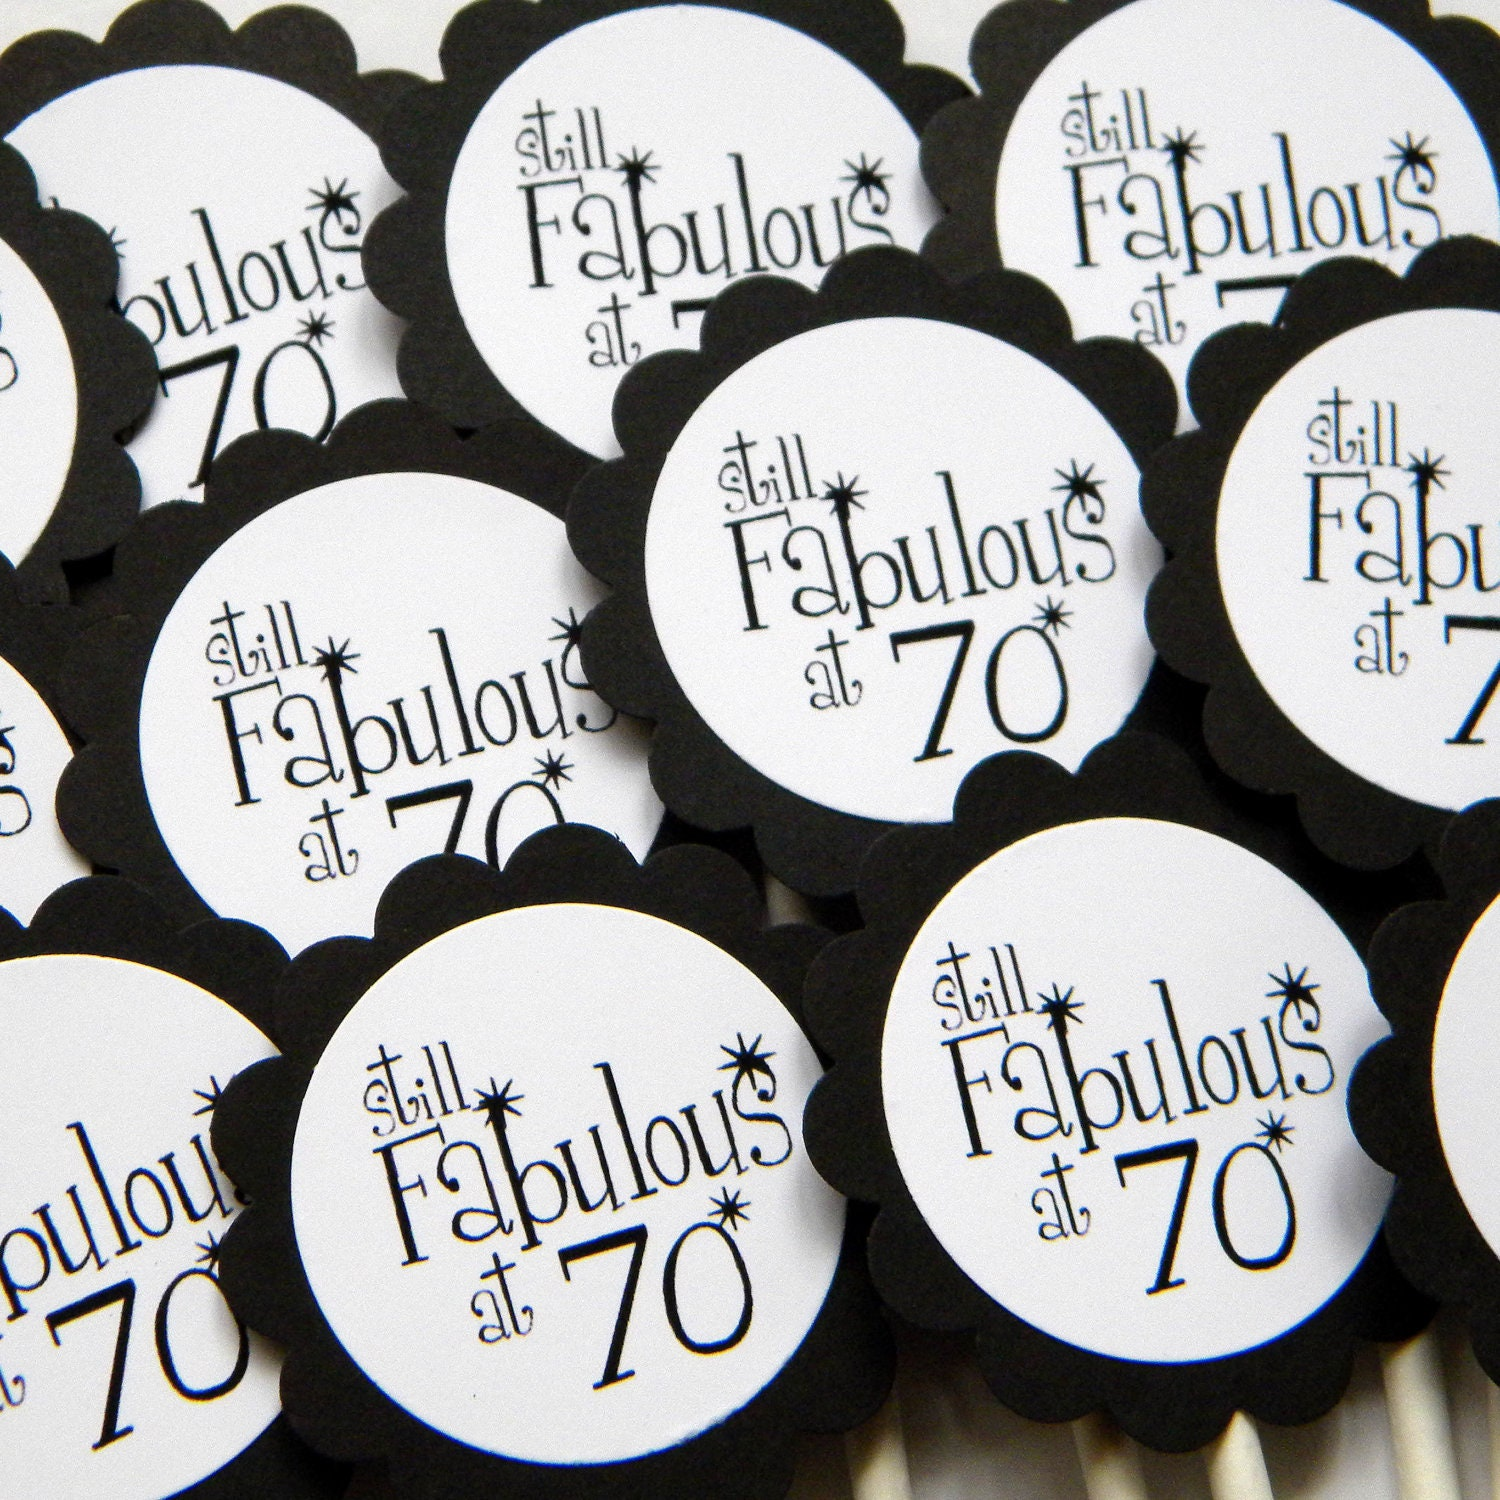 Fab At 70: 70th Birthday Cupcake Toppers Still Fabulous At 70 Black